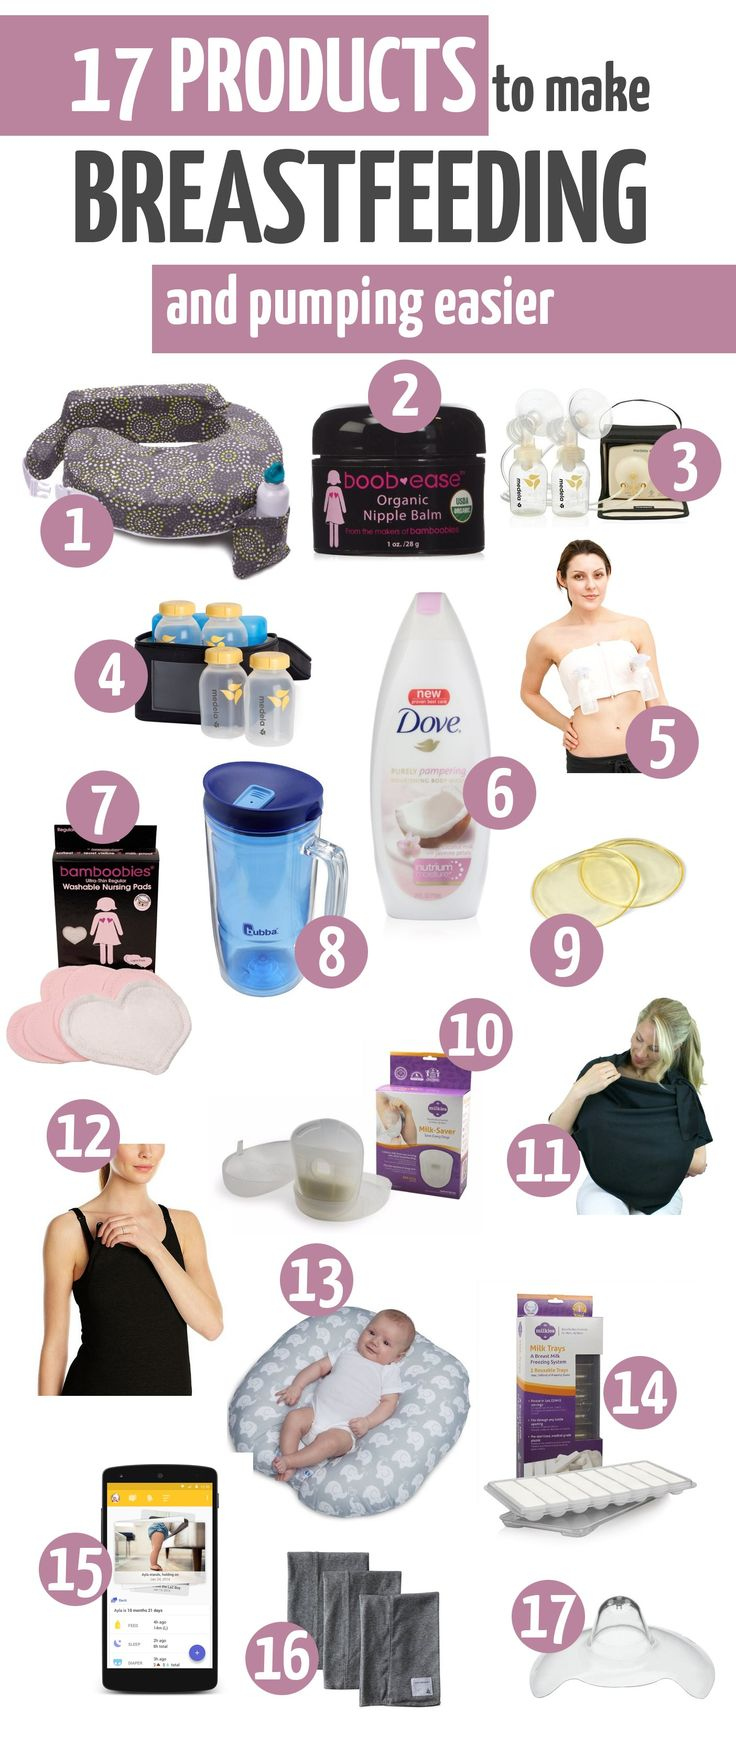 Products to help make breastfeeding easier - Tools for Breastfeeding - What to register for when planning to breastfeed